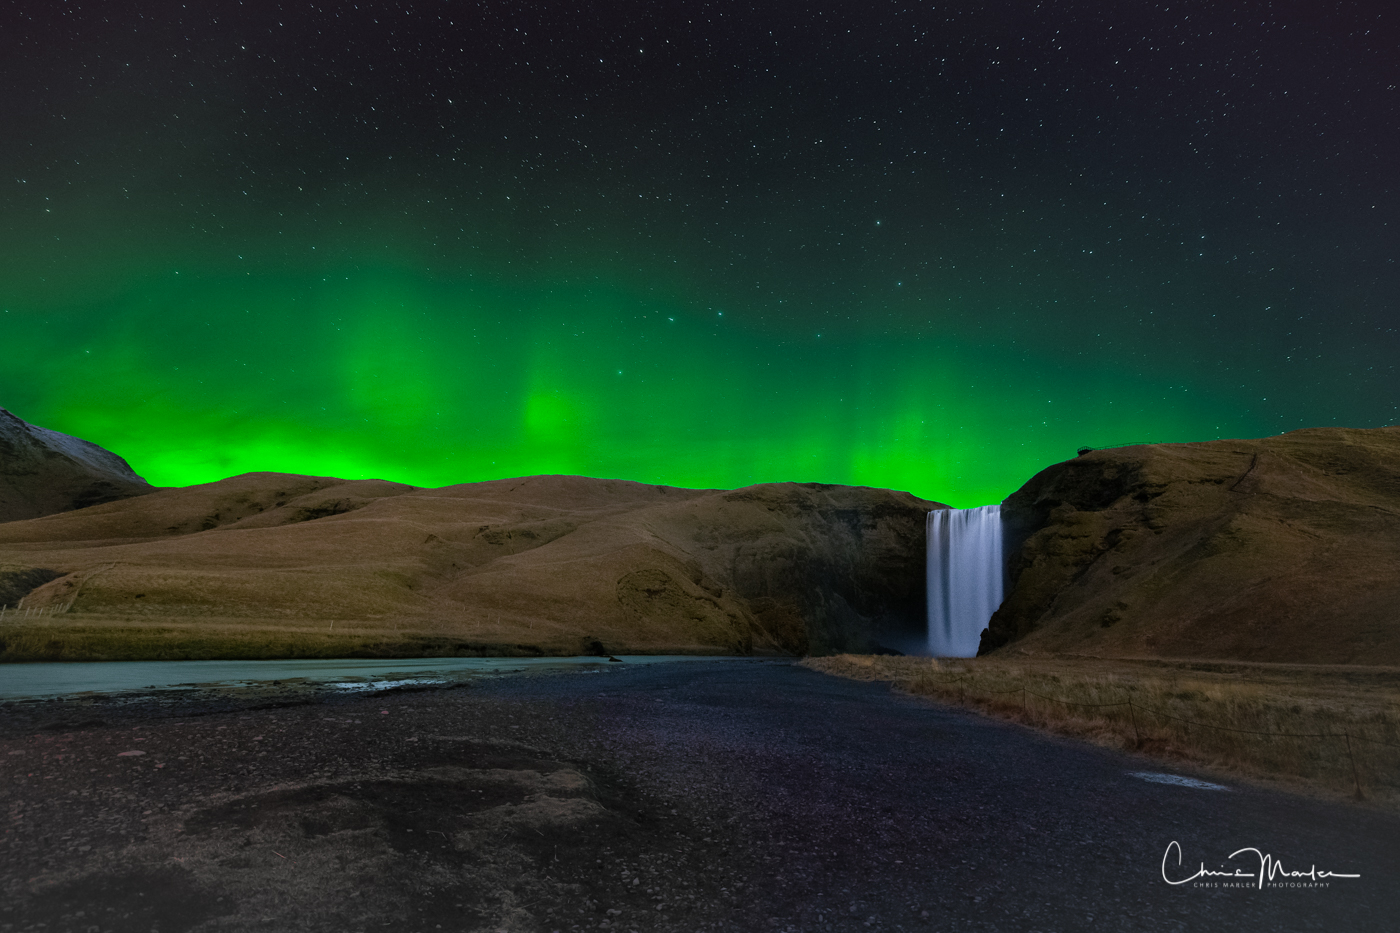 northern exposure, Iceland, aurora borealis in Iceland, northern lights in Iceland, Skogafoss waterfall, photo